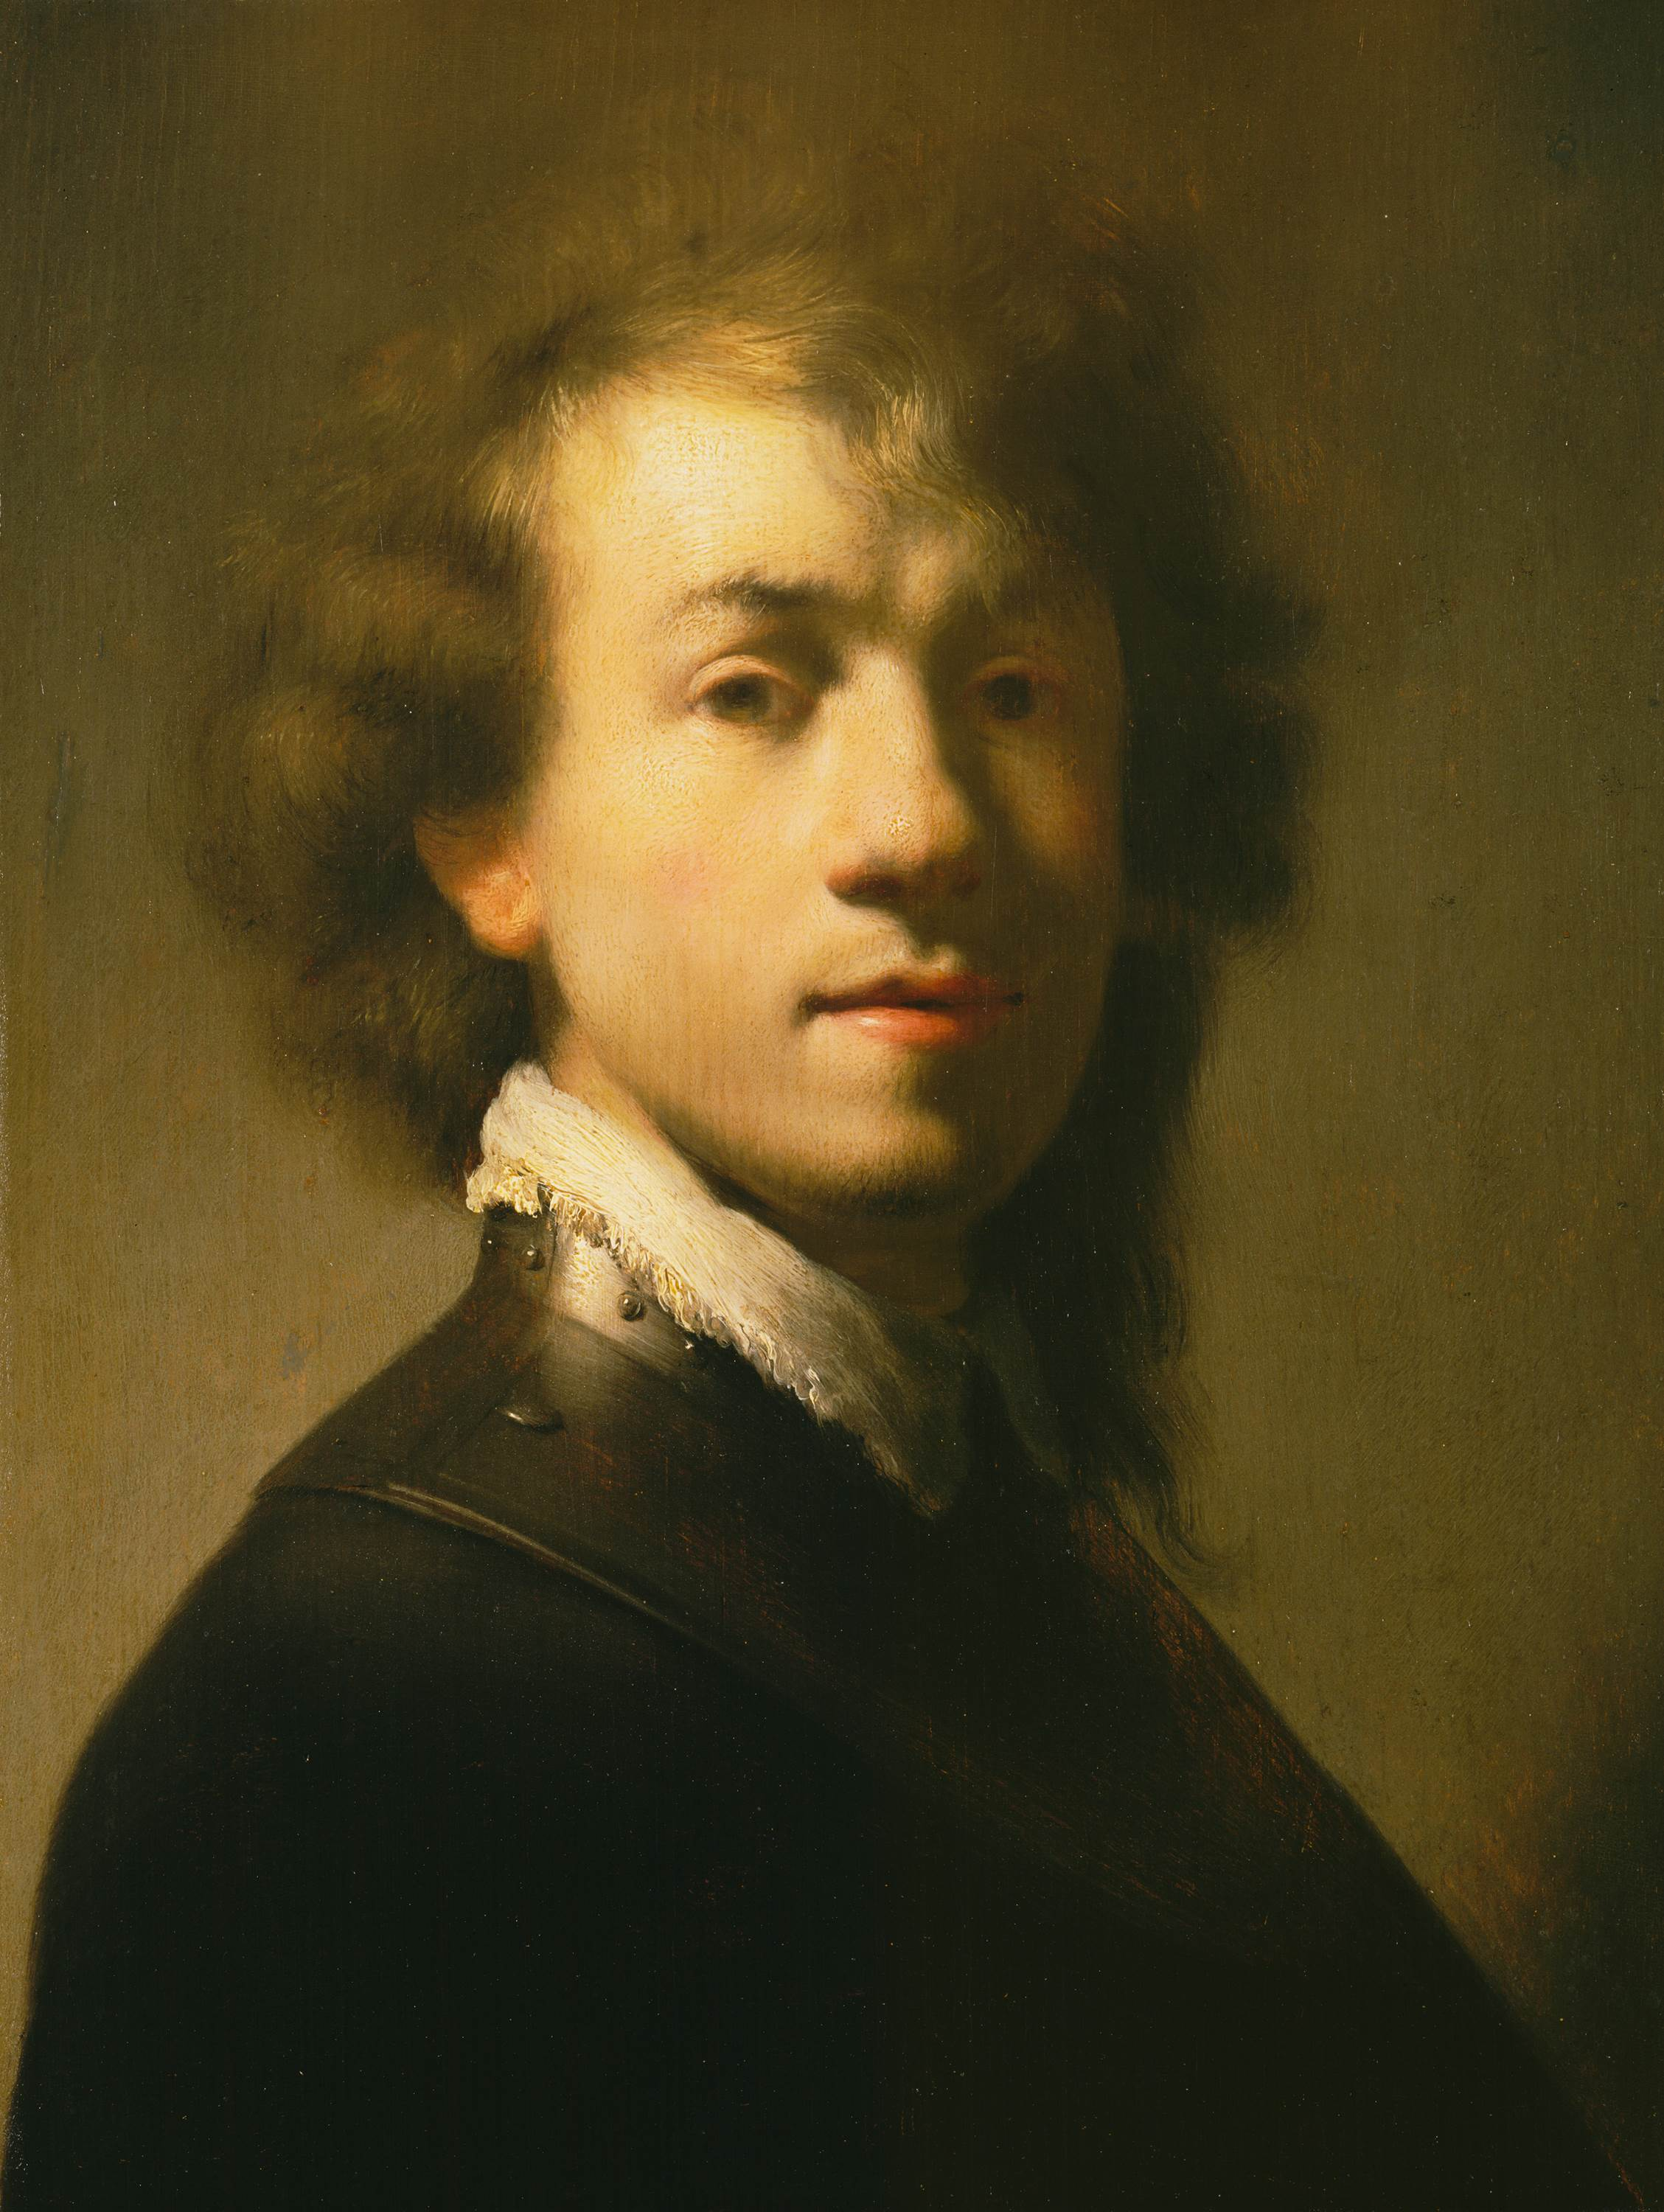 rembrandt rijn Rembrandt harmenszoon van rijn was born on 15 july 1606 in leiden, in the dutch republic, now the netherlands he was the ninth child born to harmen.